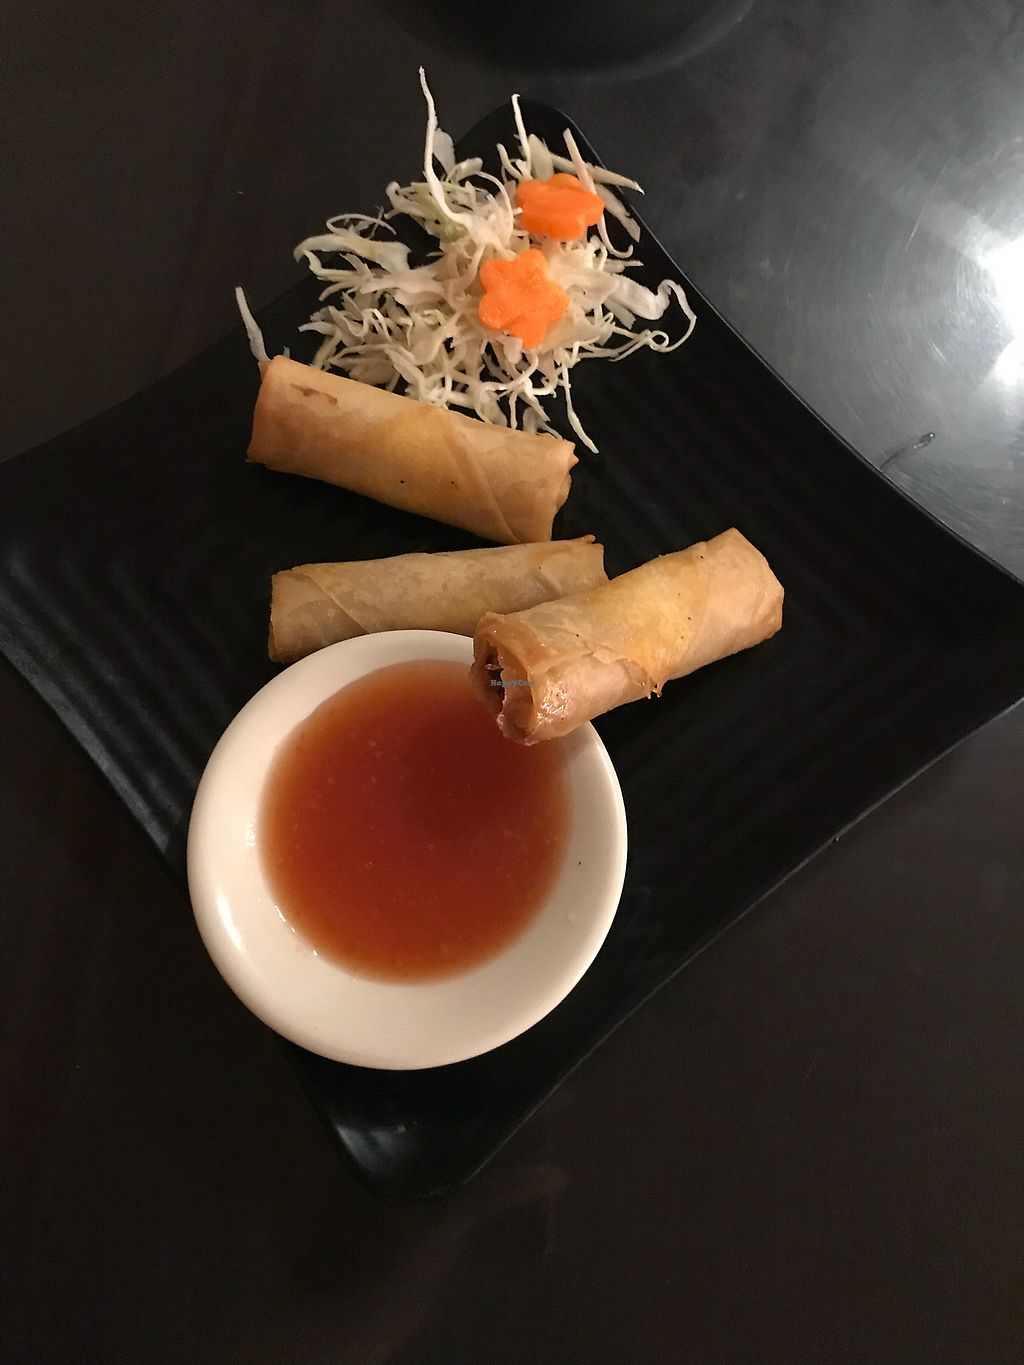 """Photo of Kati Thai Cuisine  by <a href=""""/members/profile/skipperkt"""">skipperkt</a> <br/>Vegan spring rolls <br/> March 31, 2018  - <a href='/contact/abuse/image/52641/378849'>Report</a>"""